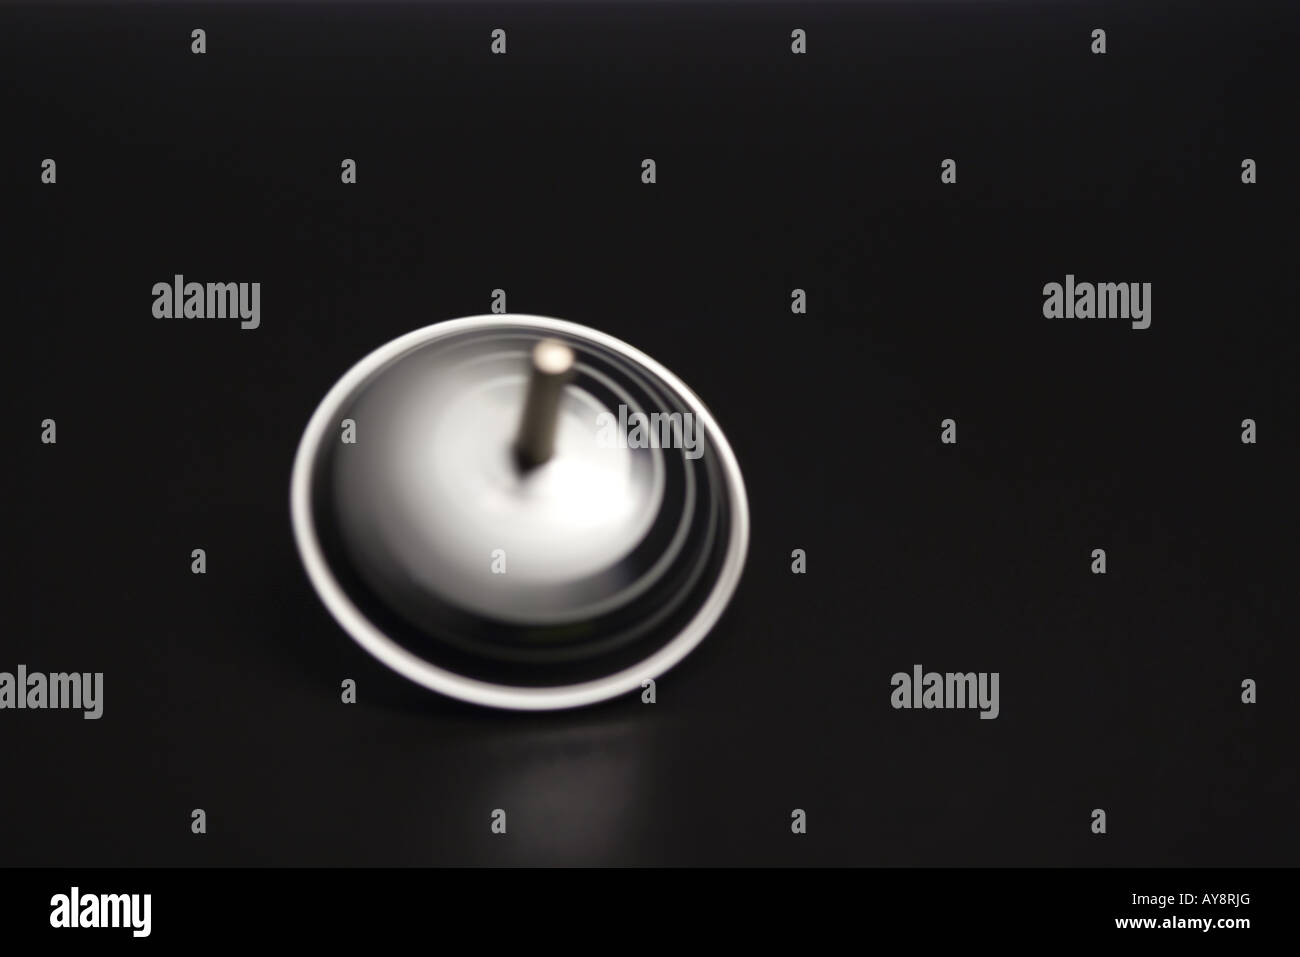 Toy top, spinning, close-up - Stock Image